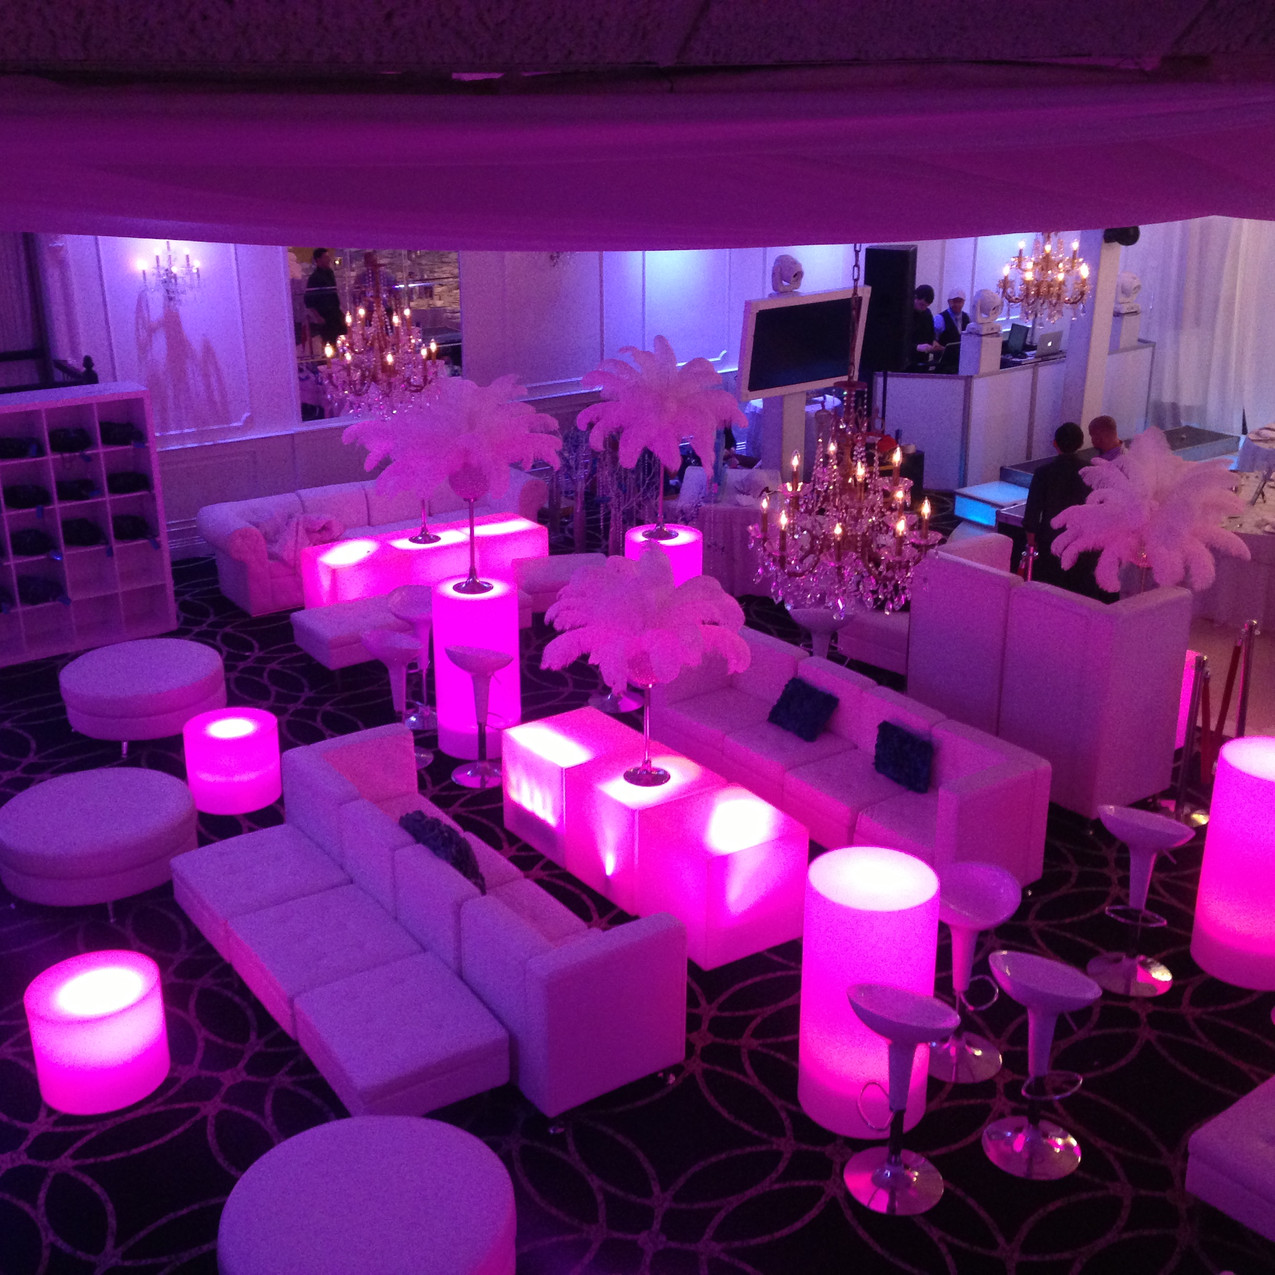 Gramercy lake side nj, lounge furniture, event feurniture nj, nj wedding after party, wedding after party new jersey